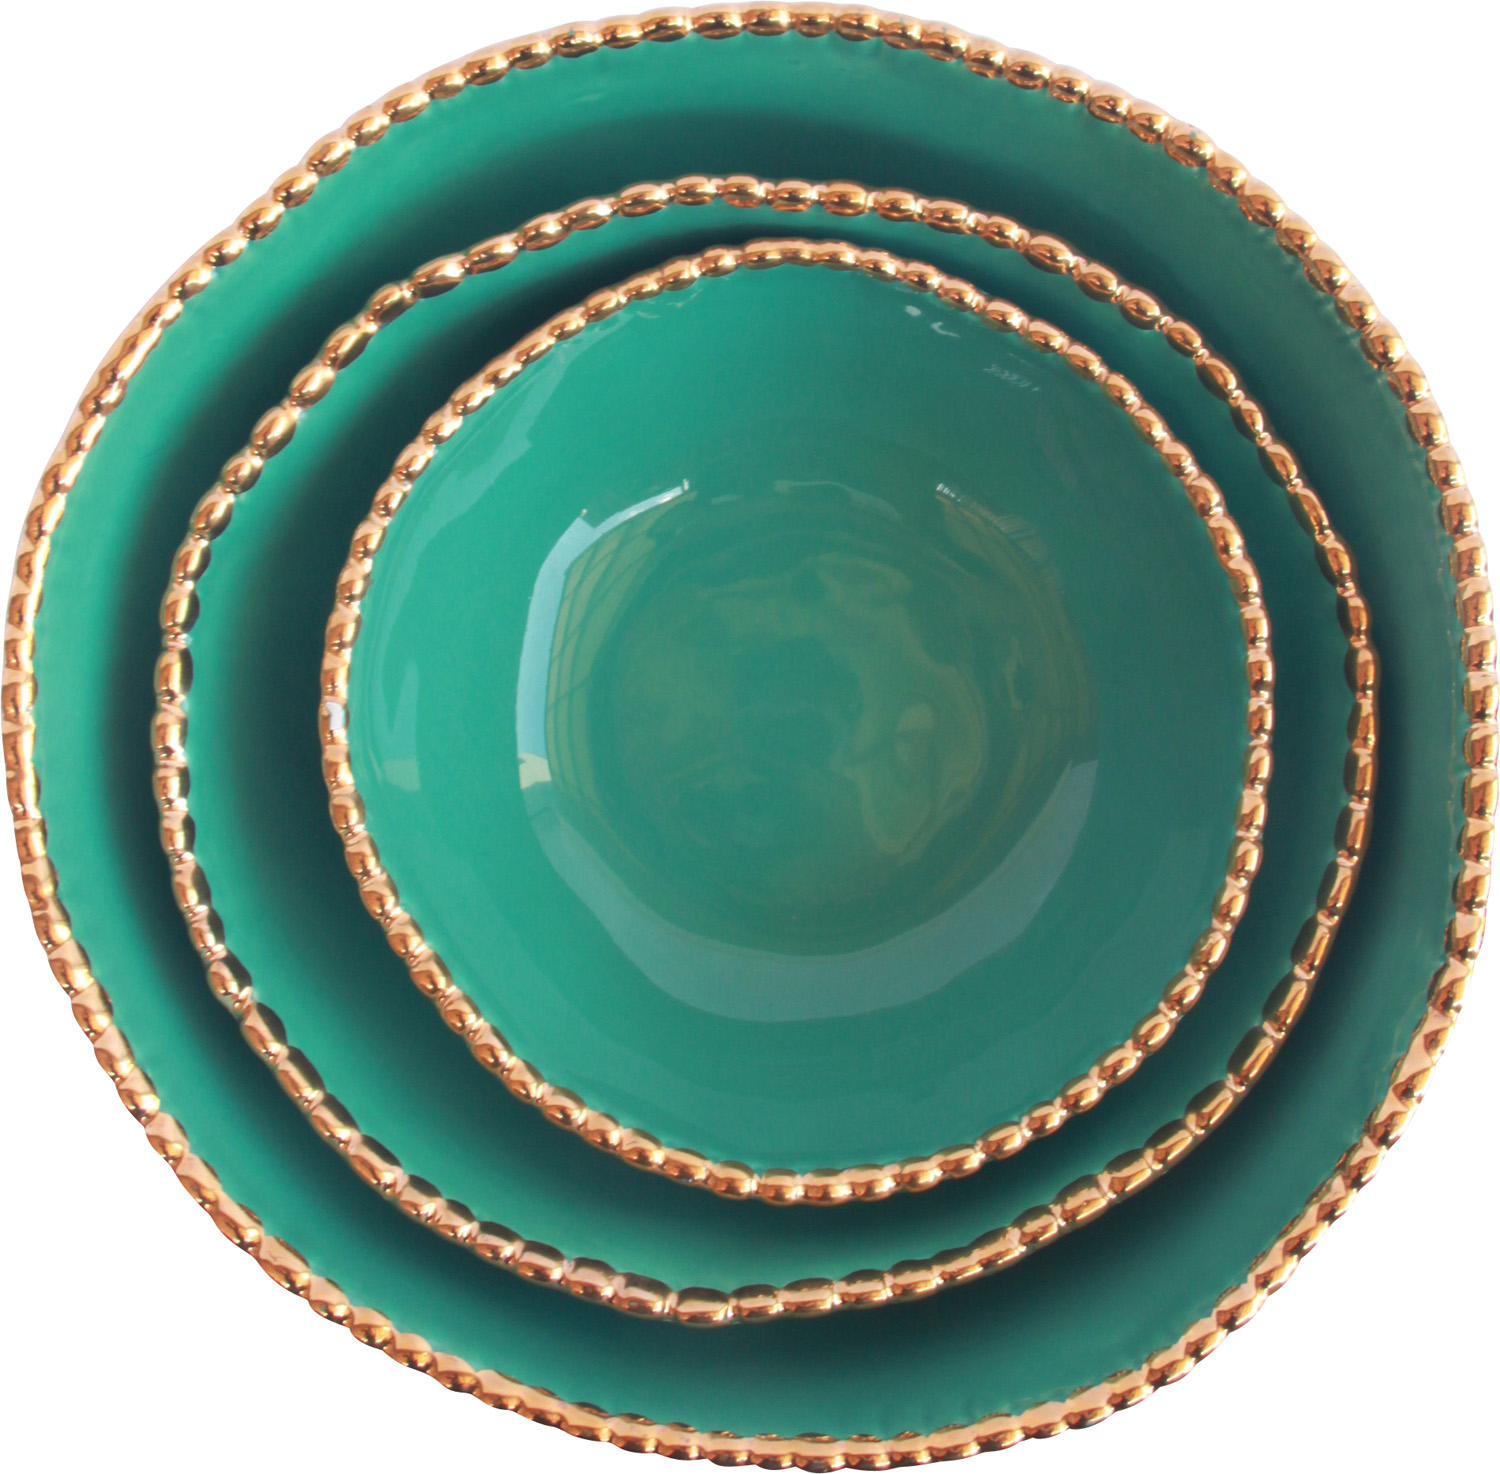 14_Orson&Blake_Bowls_turquoise_w_gold_studs